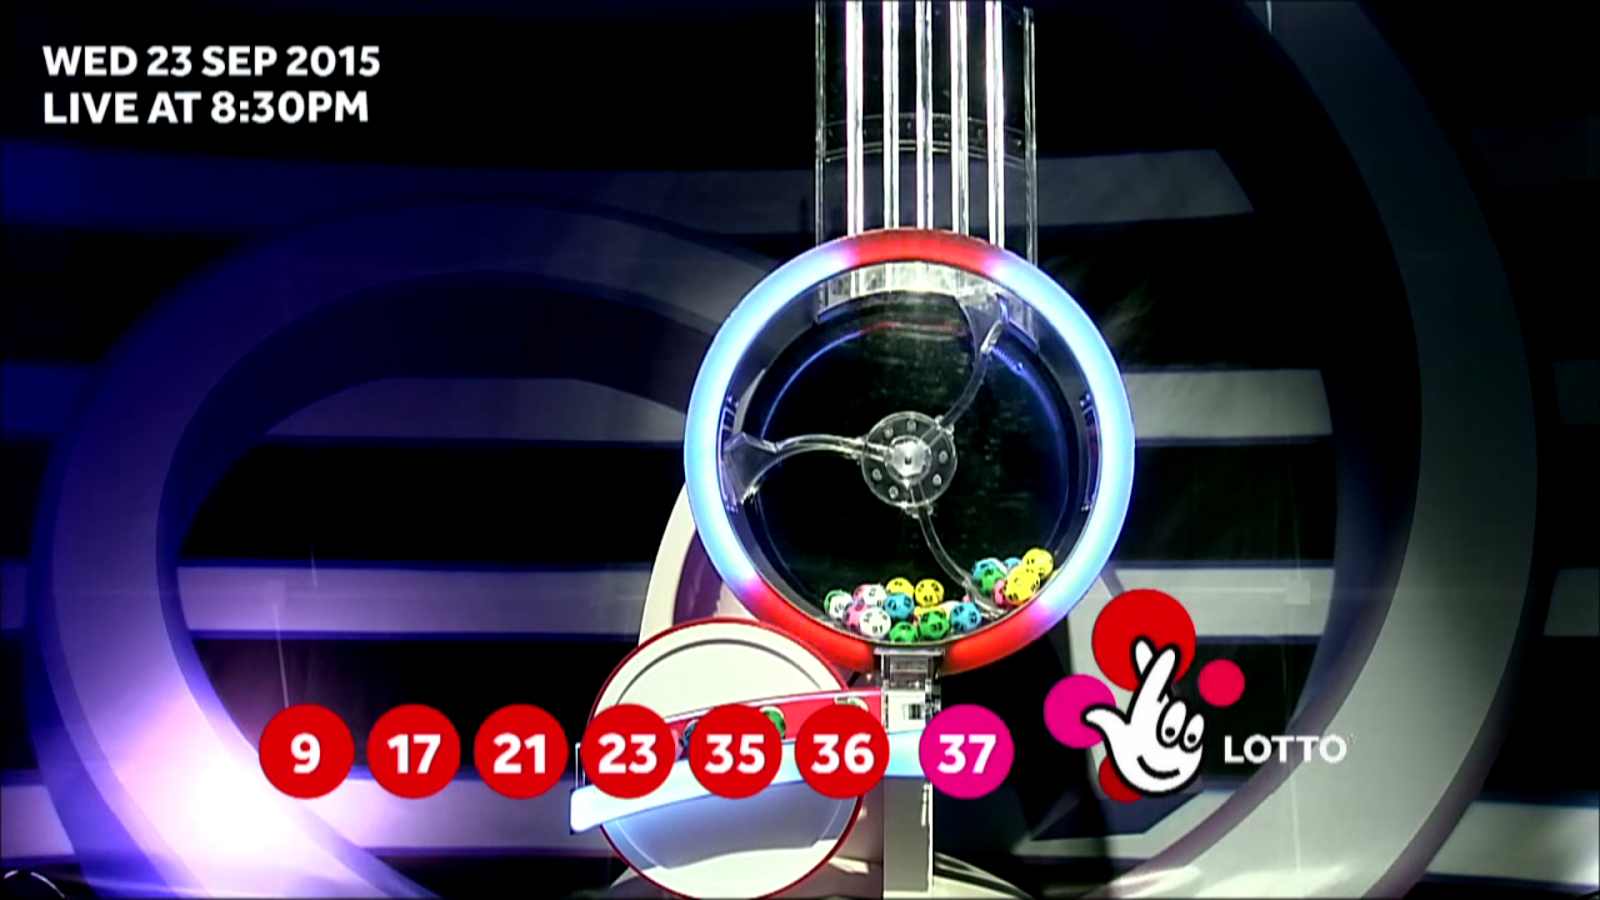 The National Lottery 'Lotto' draw results from Wednesday 23rd September 2015 - 09,17,21,23,35,36,Bonus 37